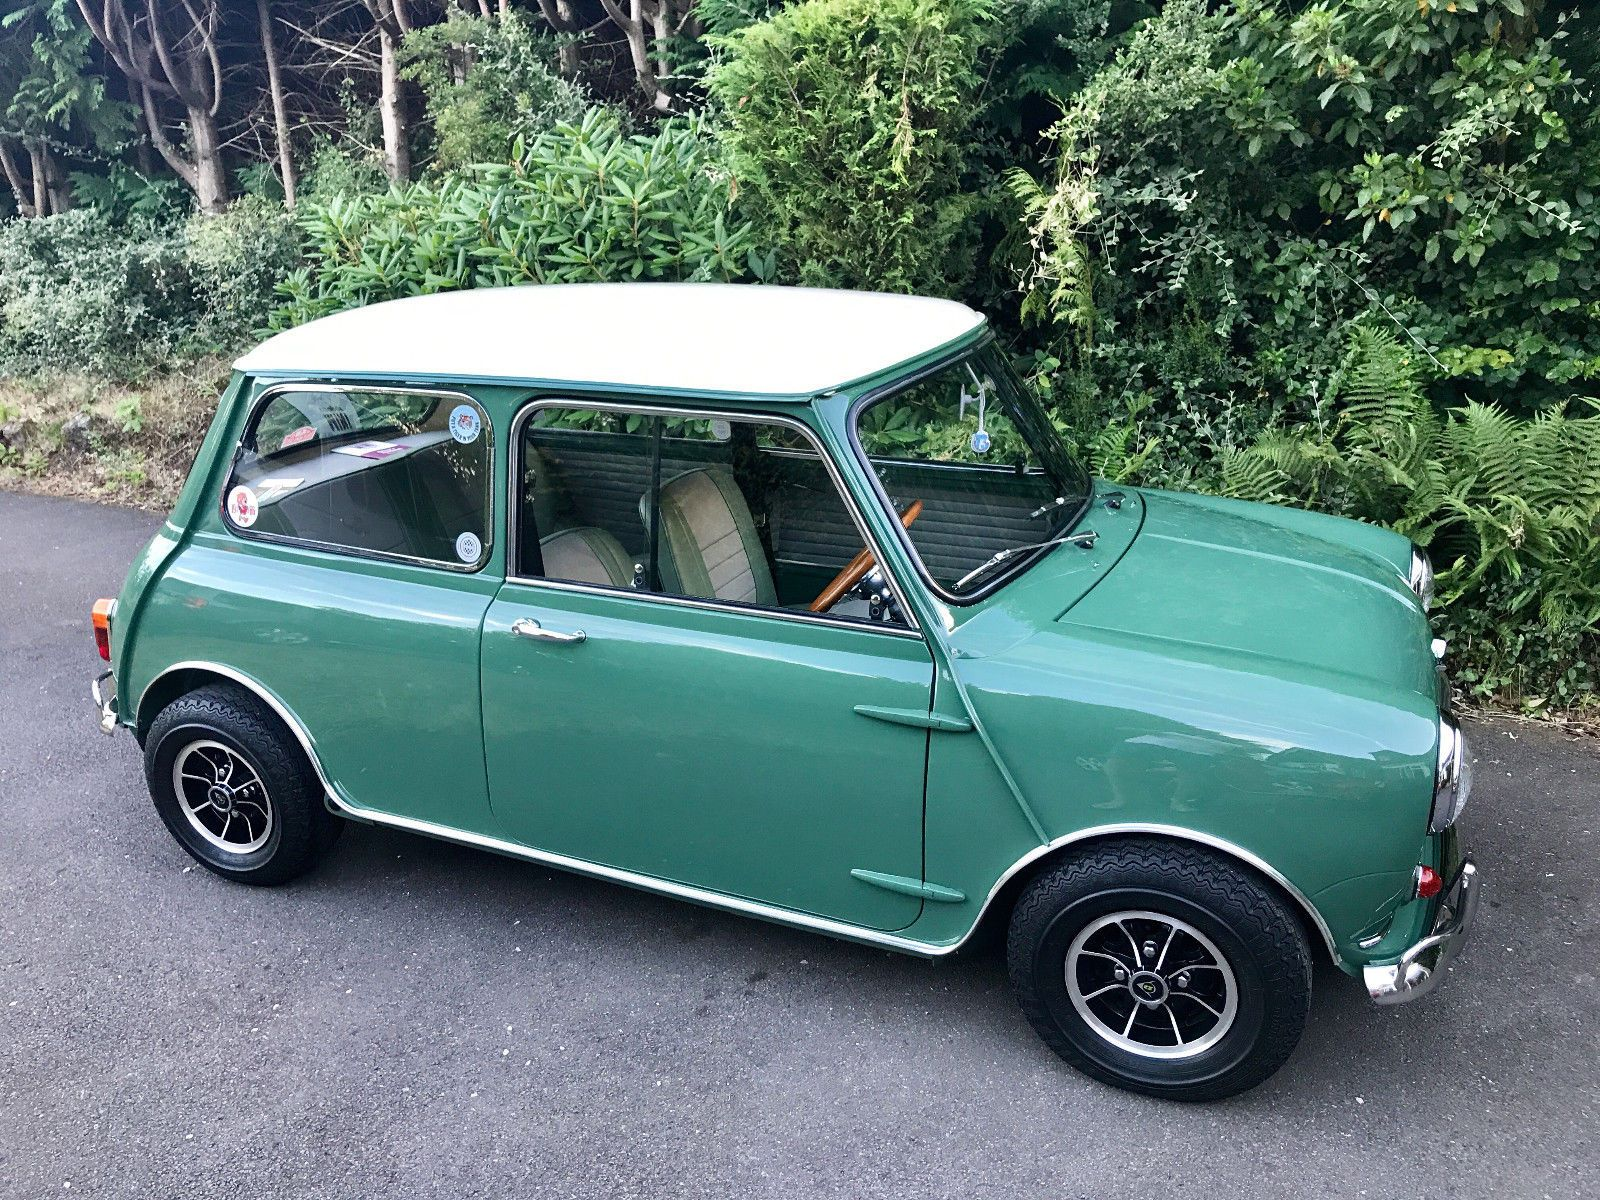 For sale is my much loved 1966 built Mk1 Morris Mini